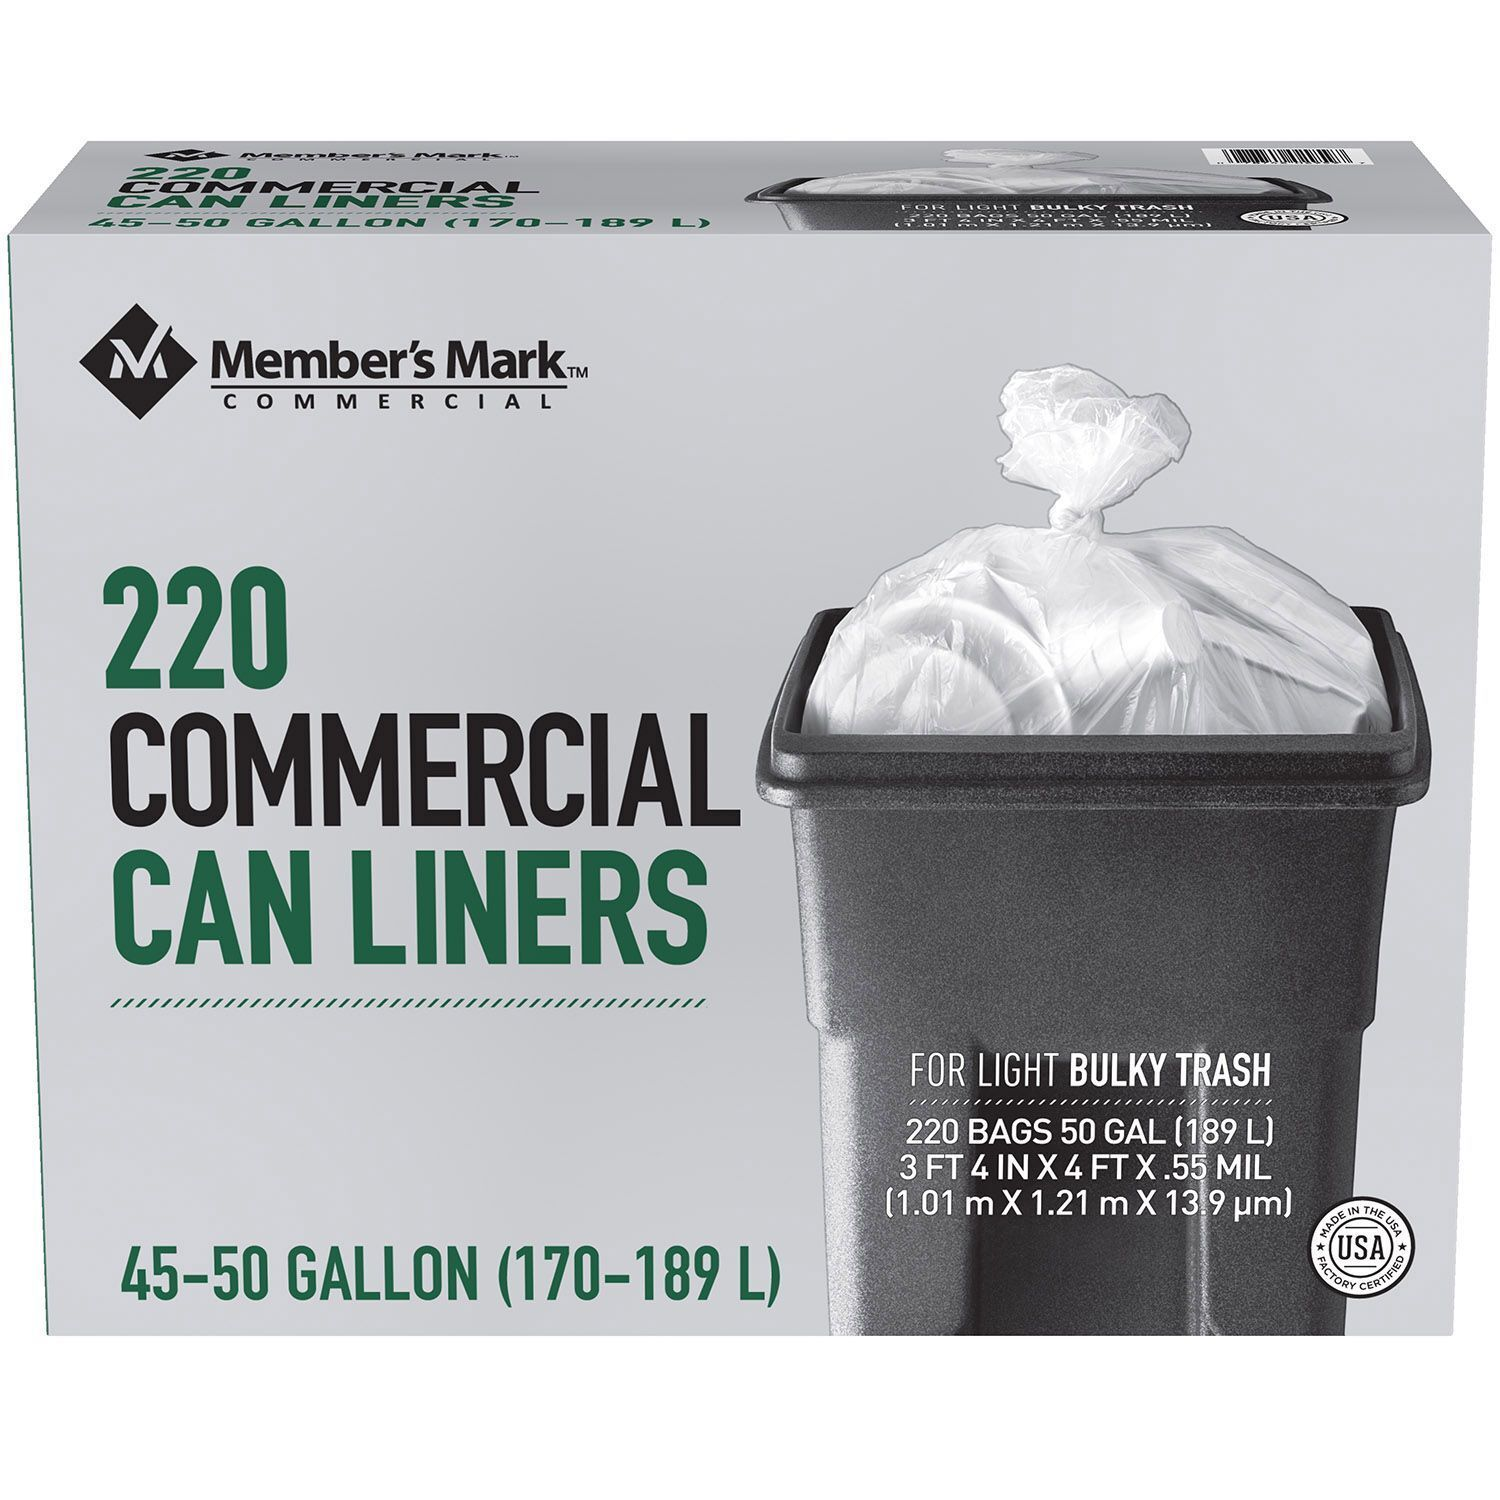 Member's Mark Commercial Can Liners 45-50 Gallon 220 ct Clea